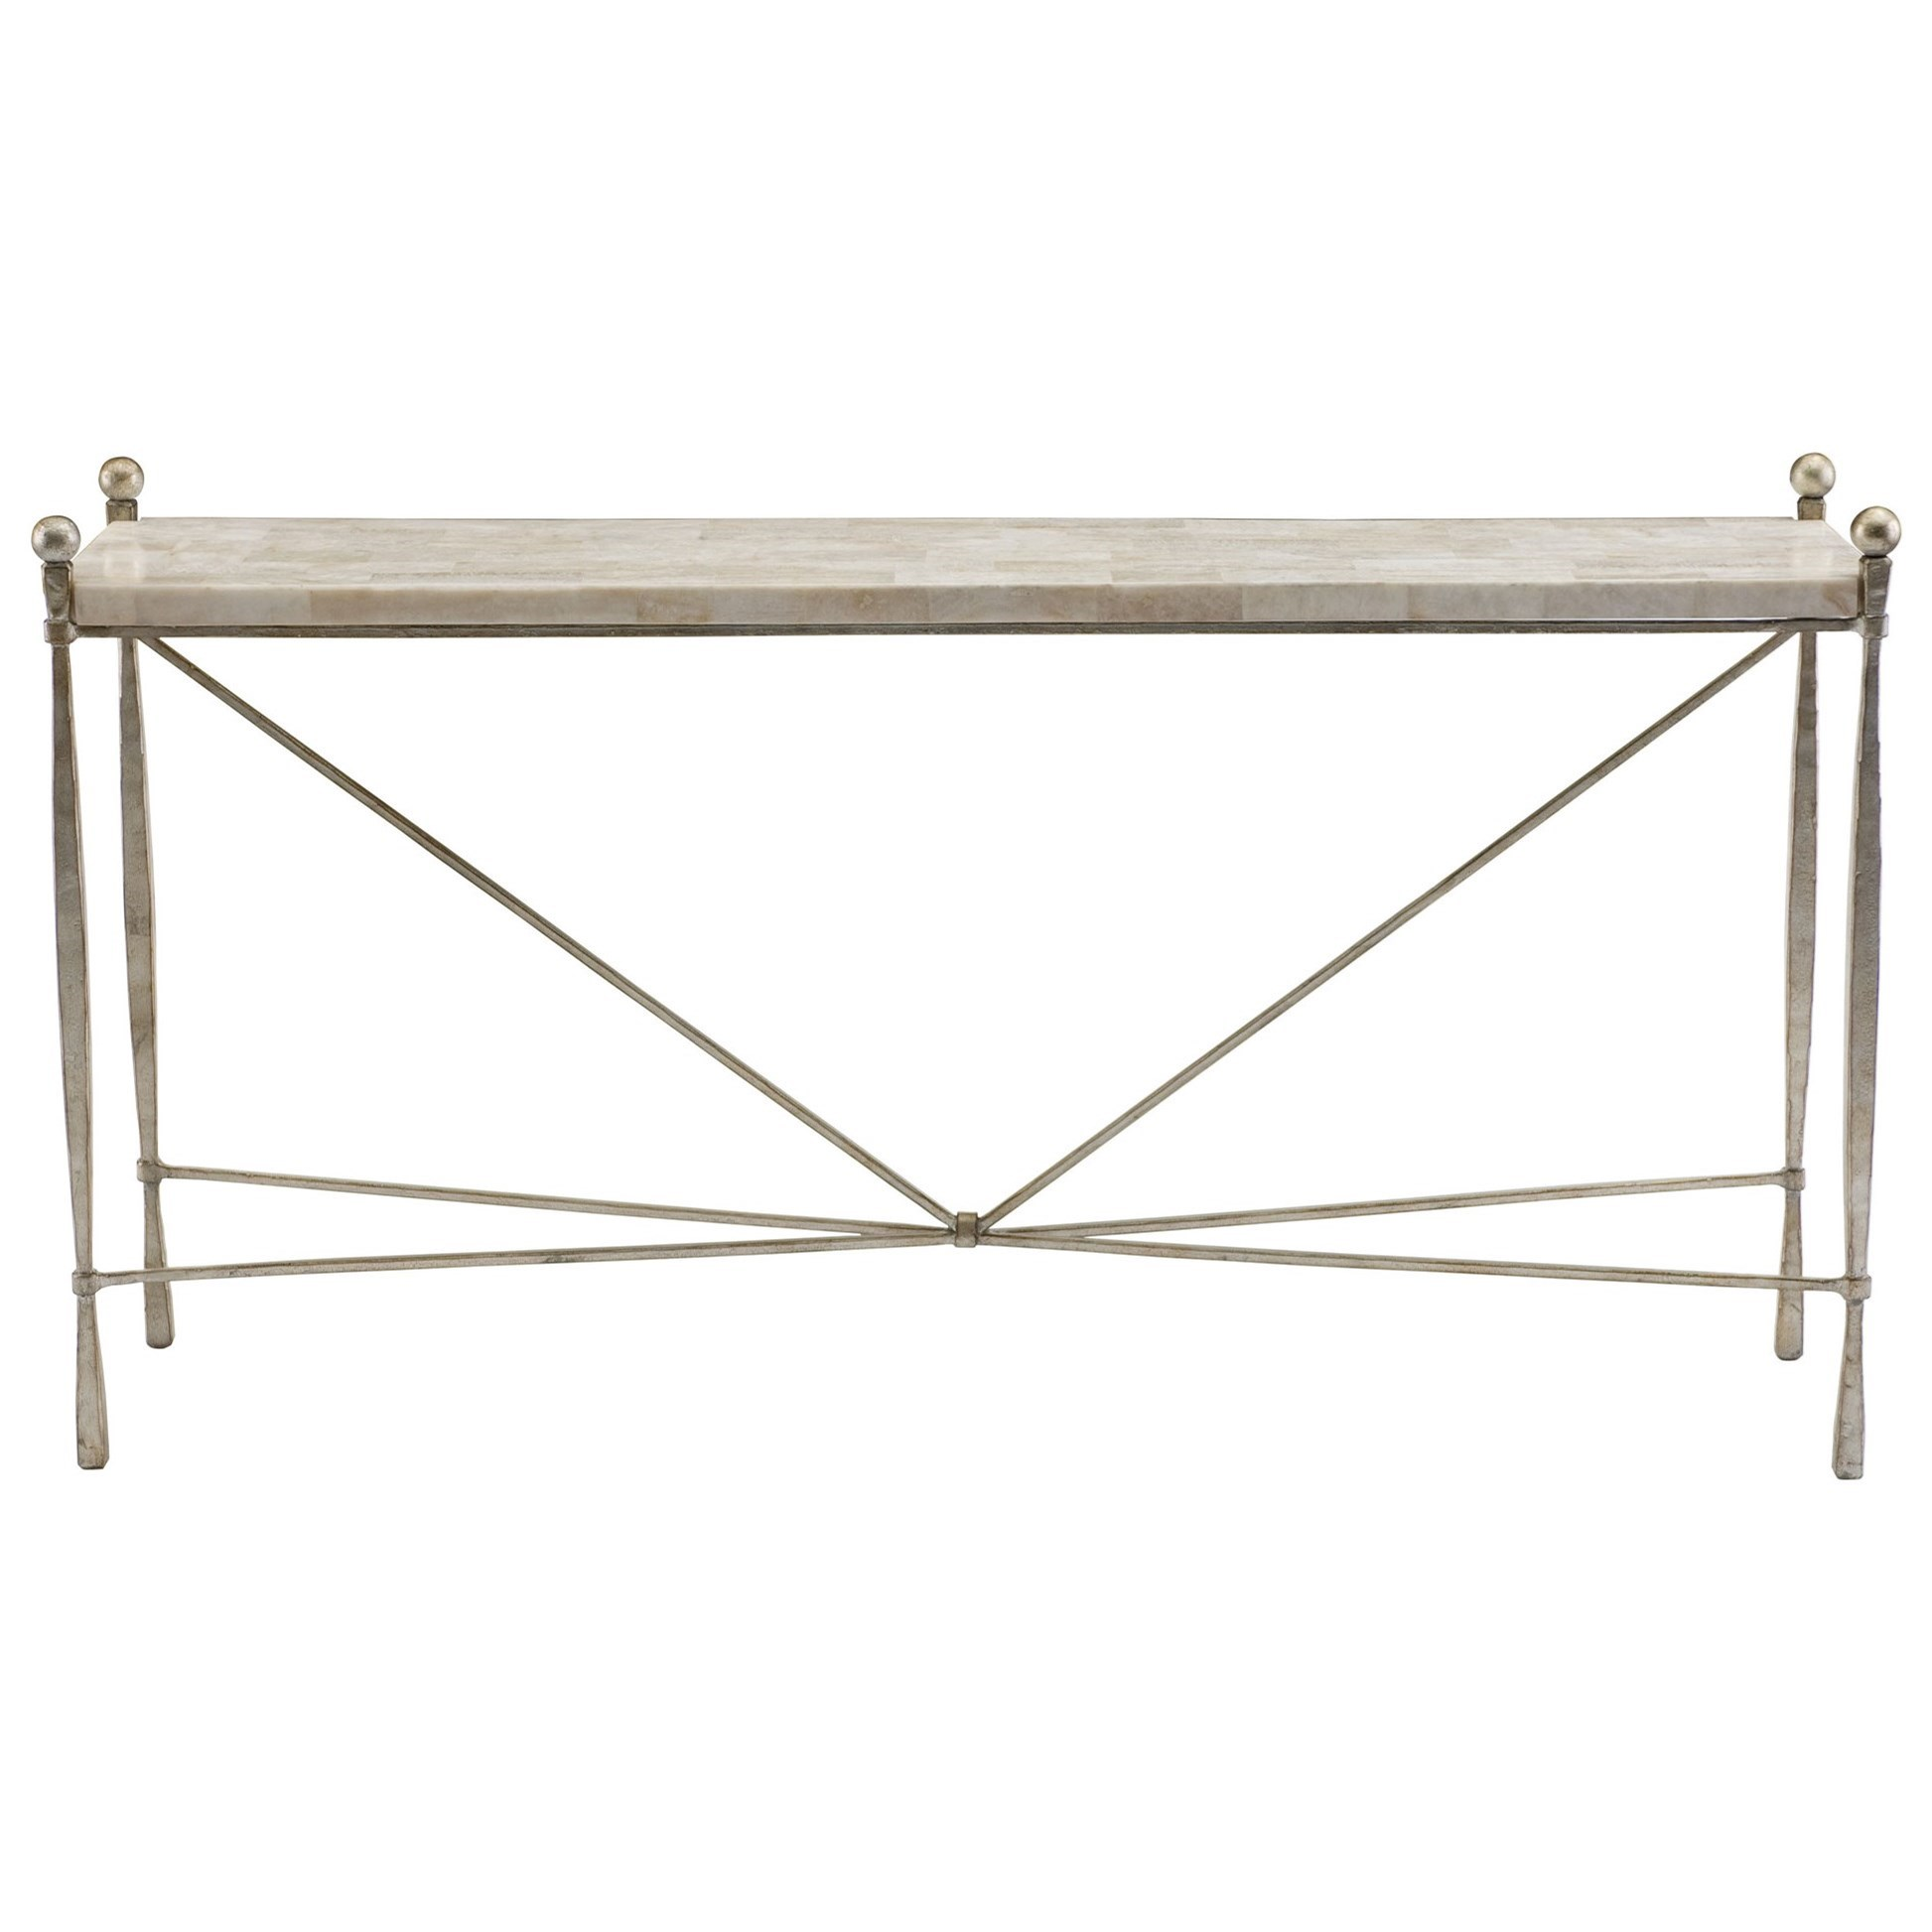 Bernhardt Clarion Console Table - Item Number: 563-911